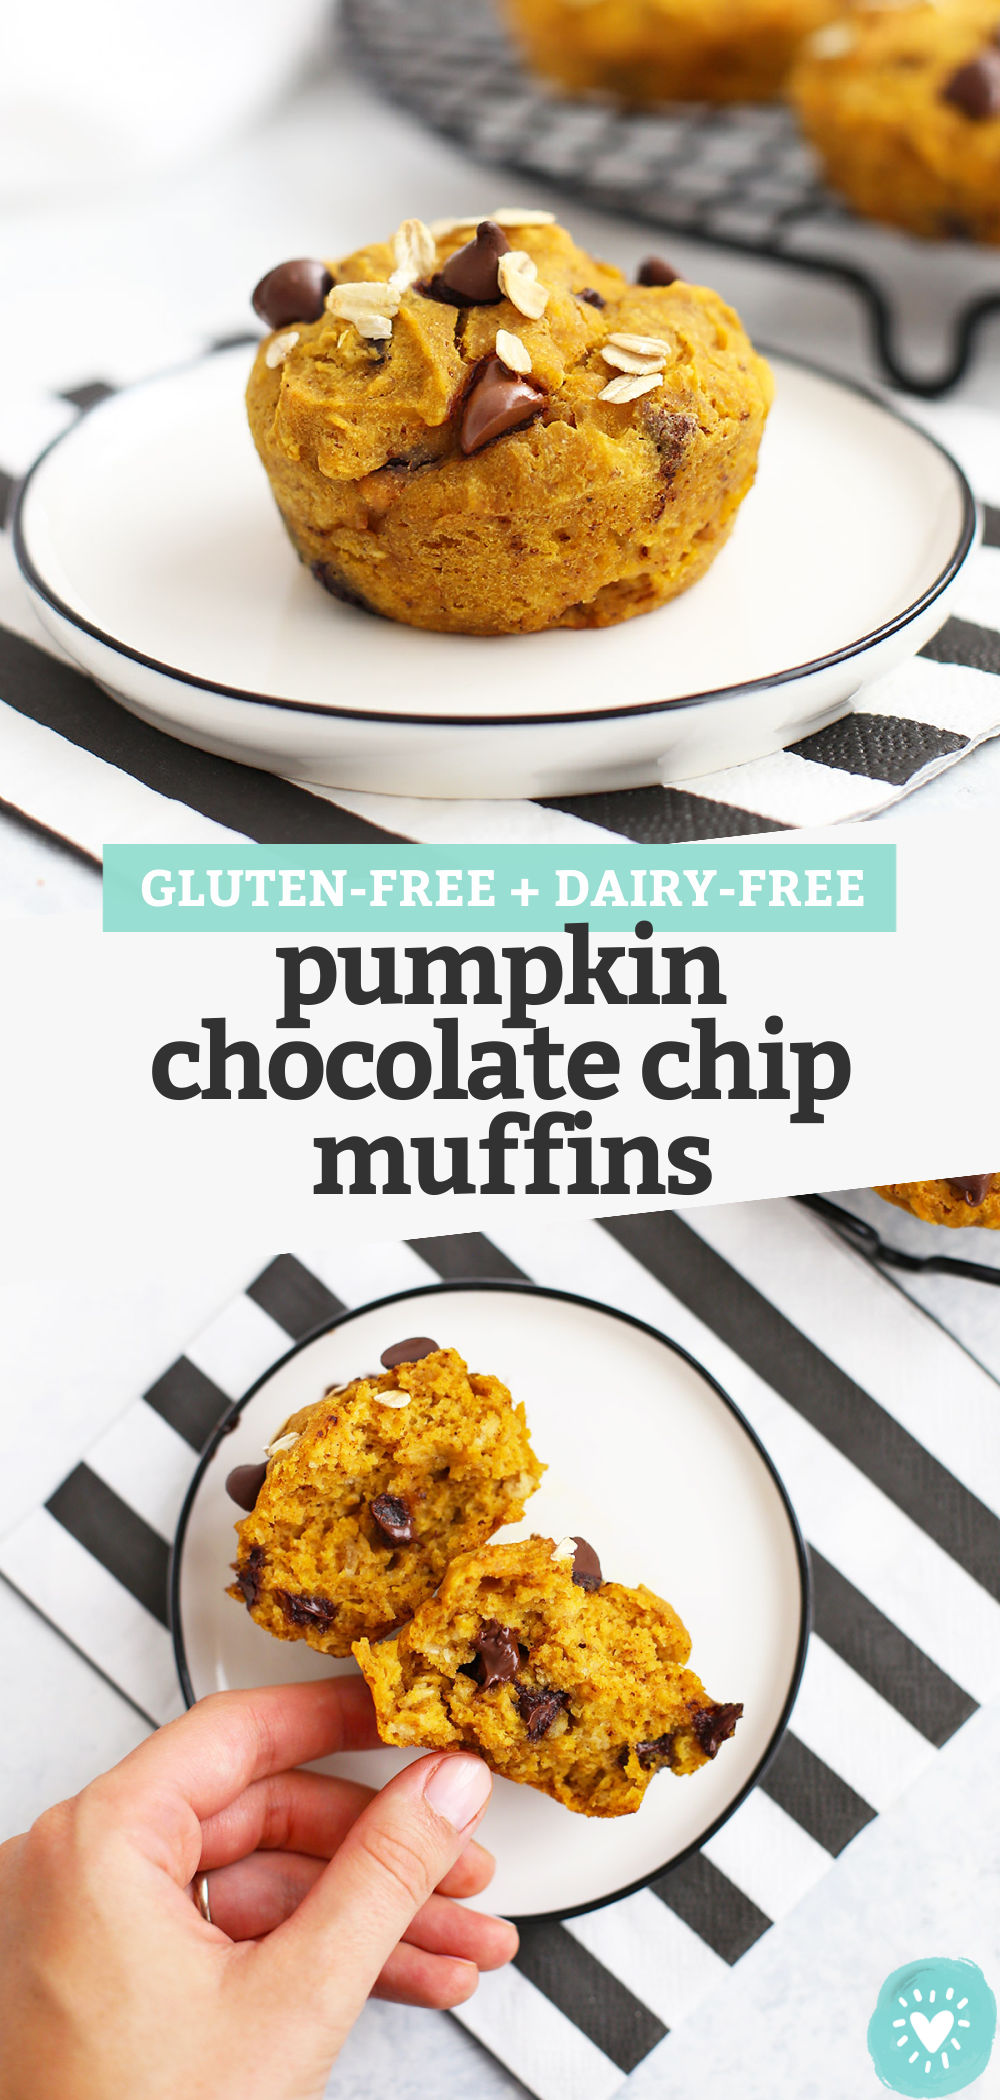 "Collage of Images of Gluten Free Pumpkin Chocolate Chip Muffins with text overlay that reads ""Gluten-Free Dairy-Free Pumpkin Chocolate Chip Muffins"""